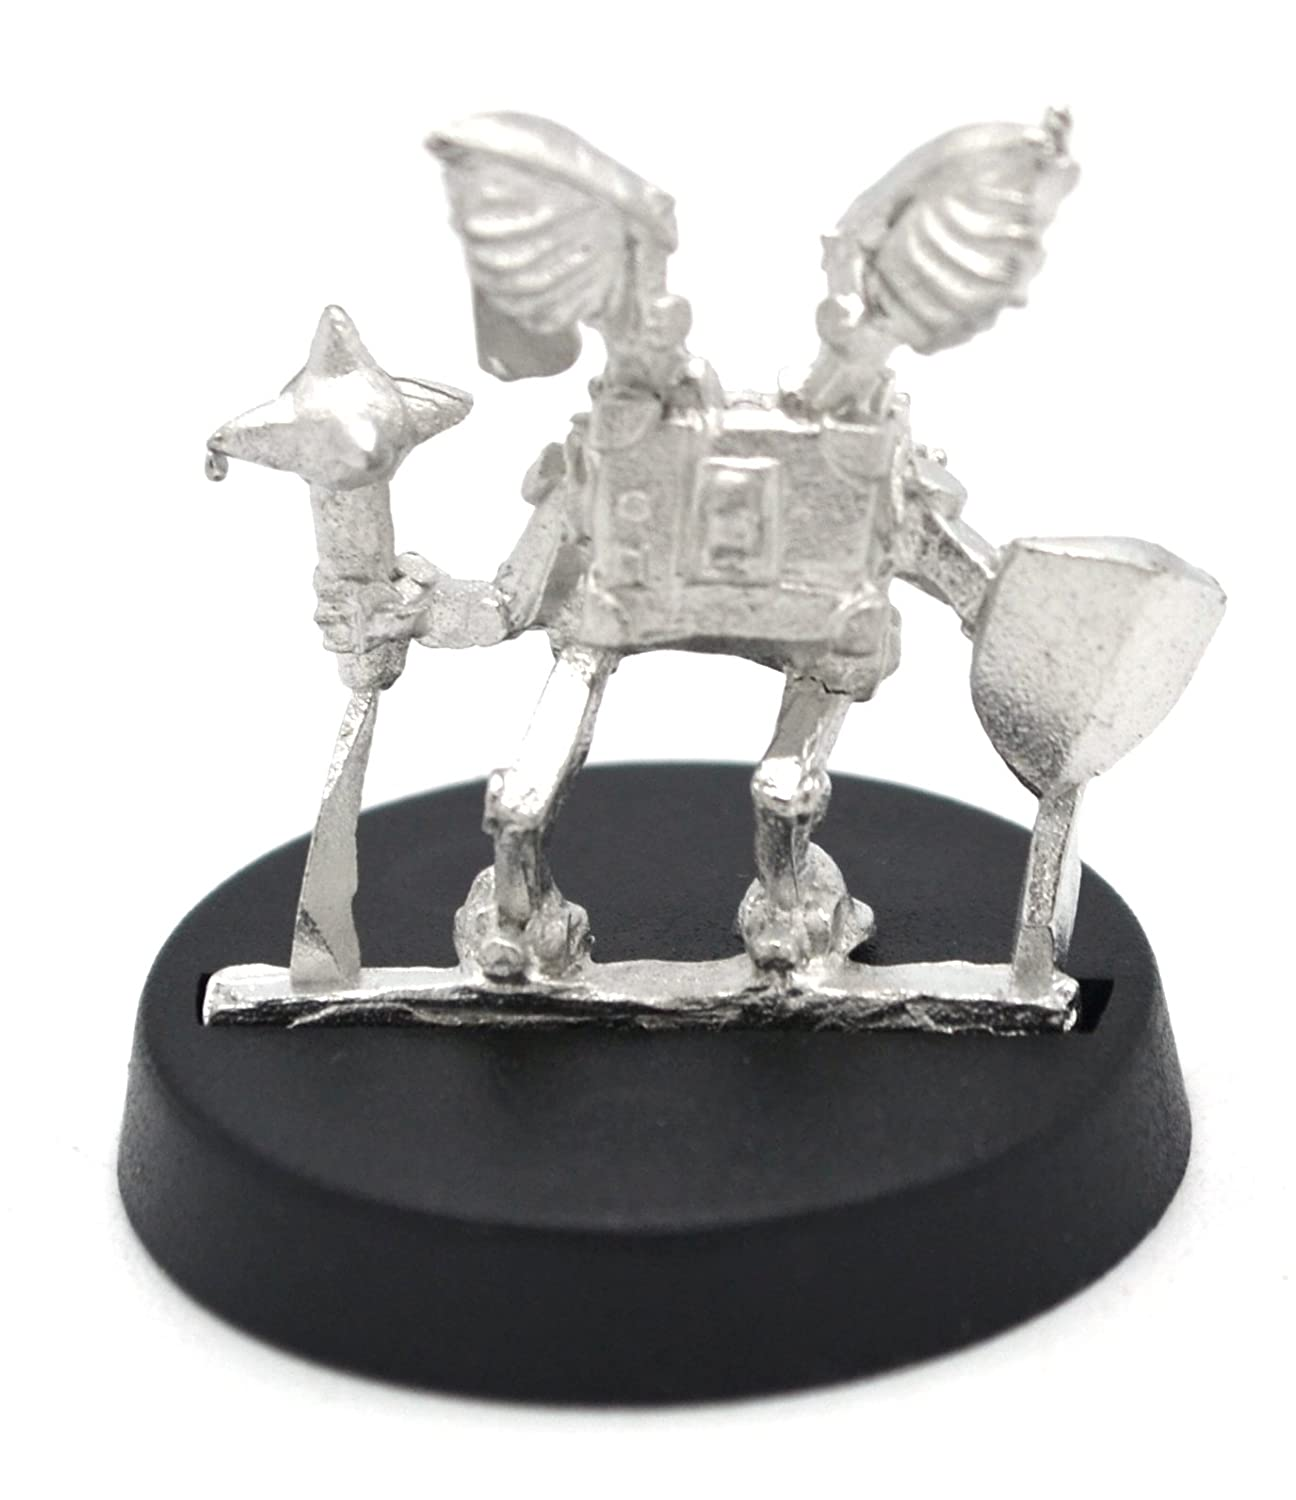 for 28mm Scale Table Top War Games Stonehaven Modron Paladin Miniature Figure Made in US Stonehaven Miniatures